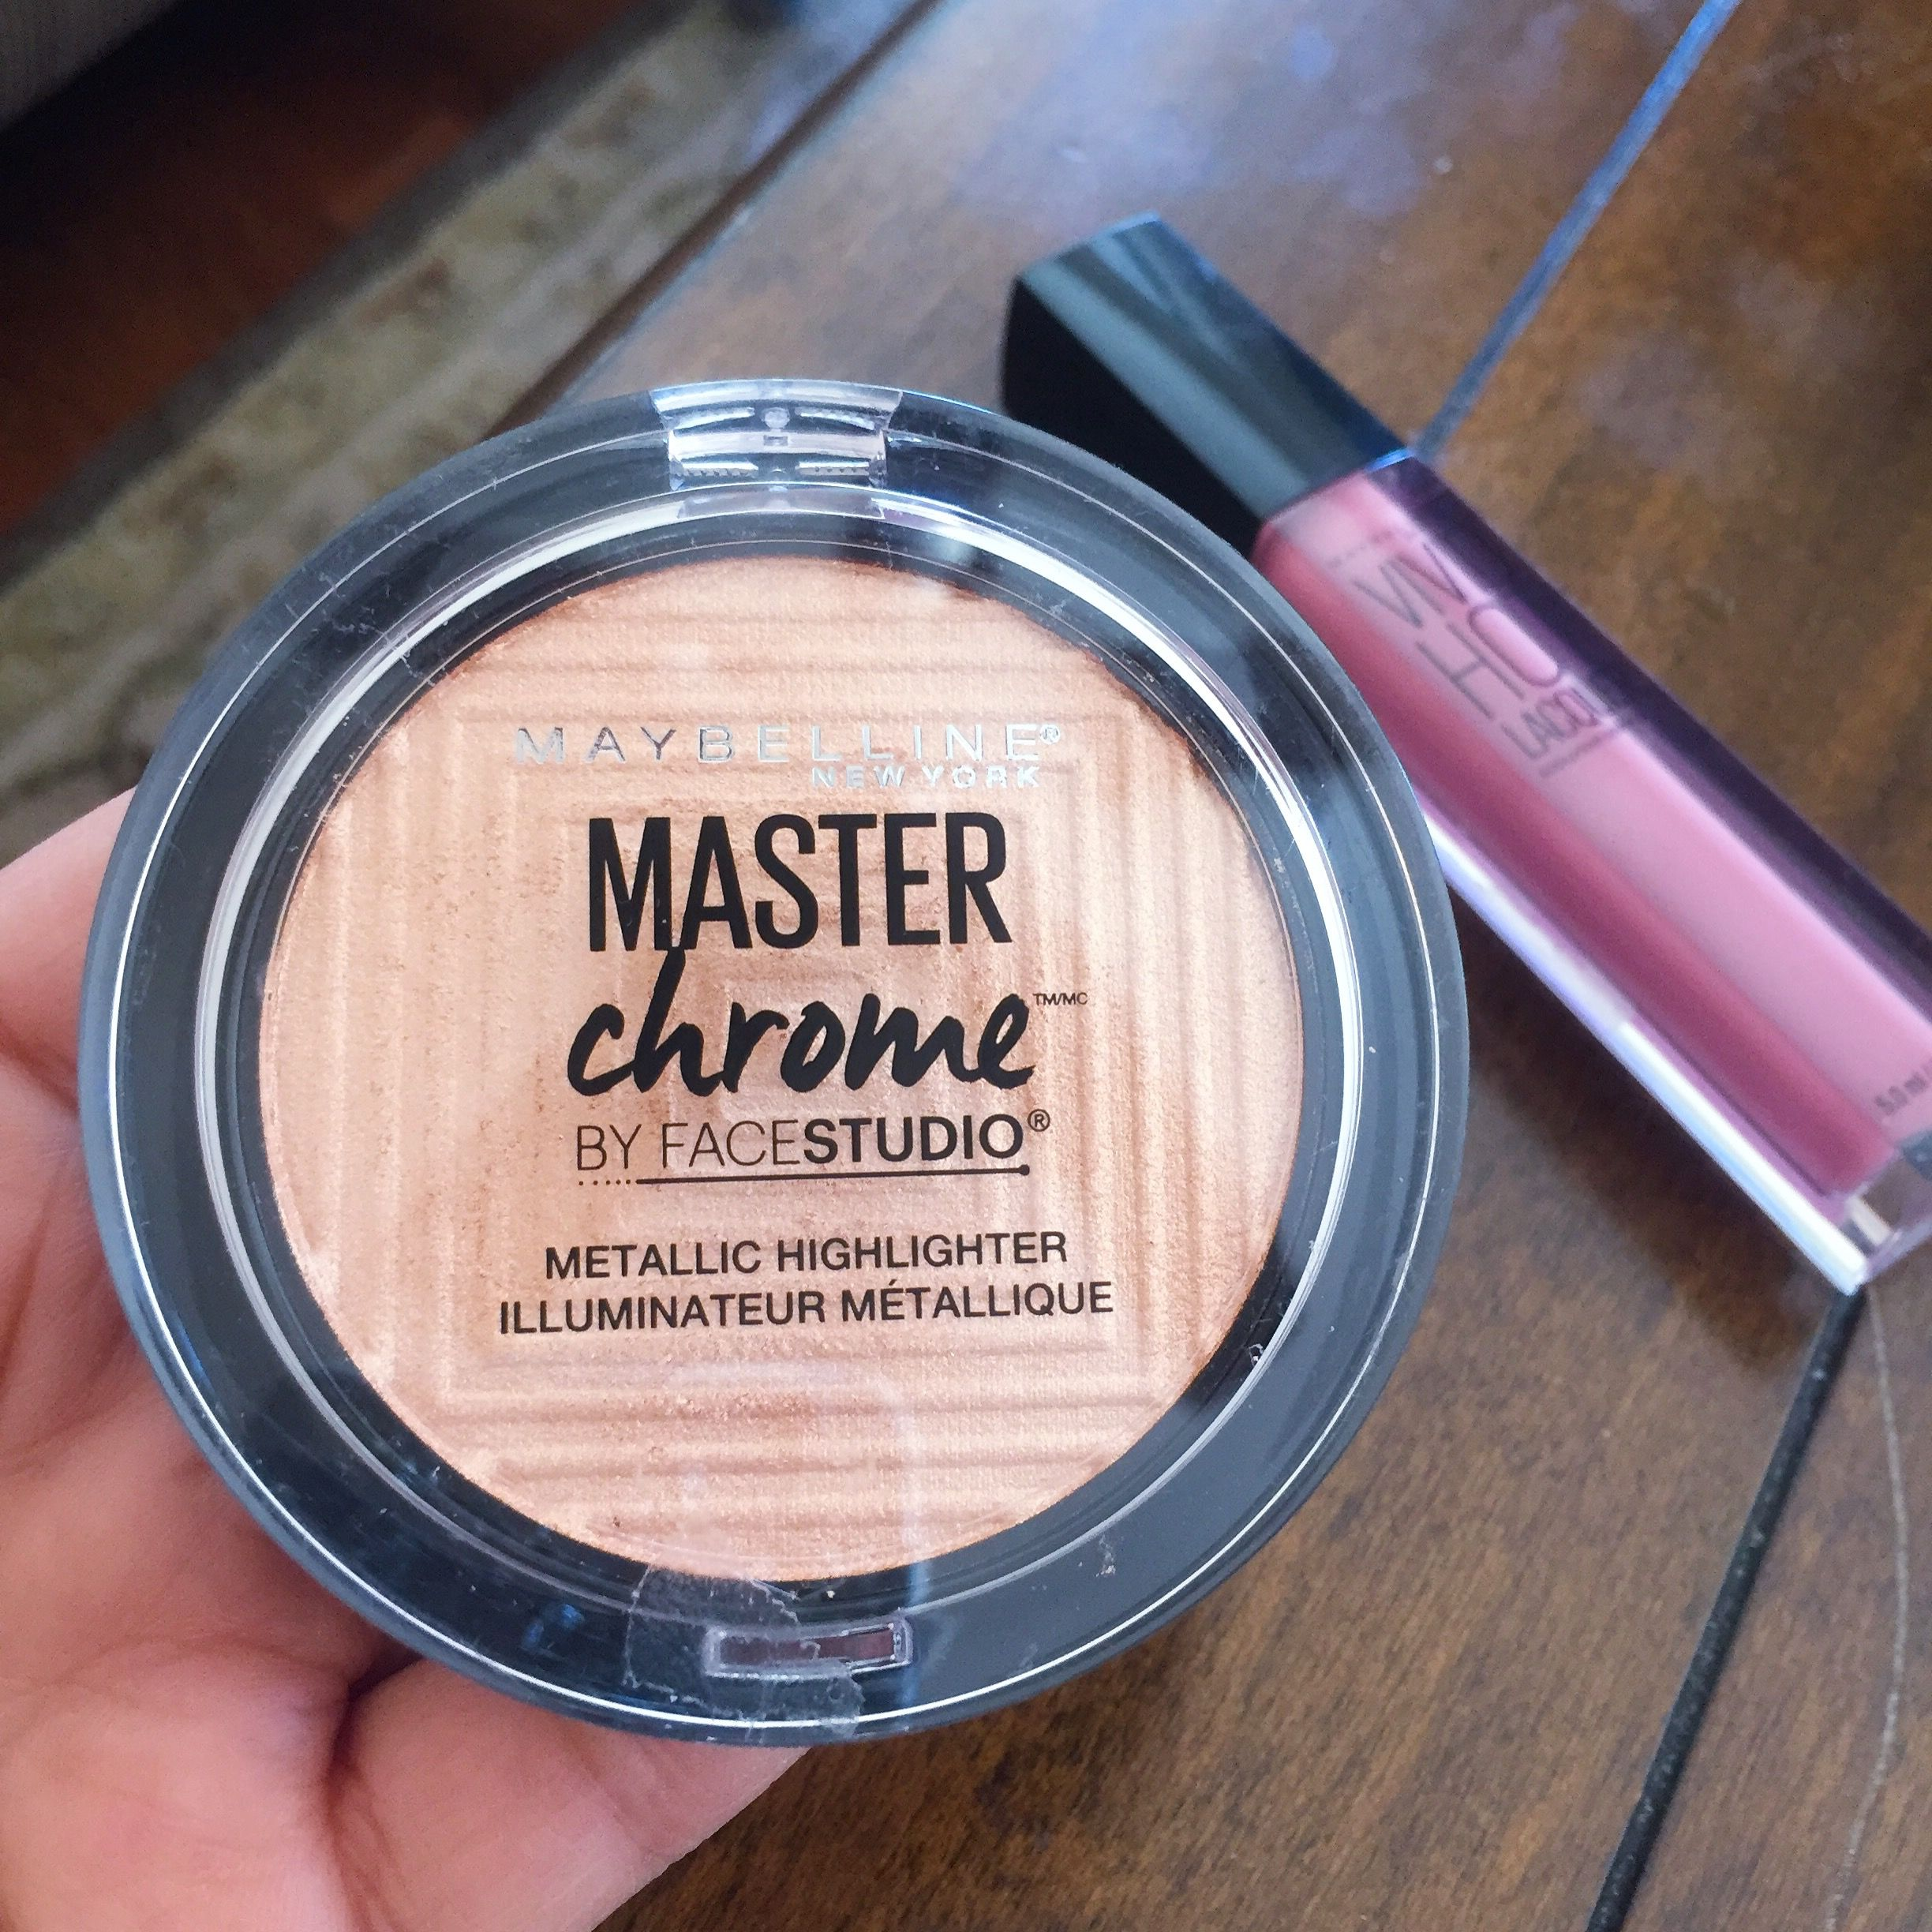 Hey Highlighter Lovers The Latest On Makeup News Is That Maybelline Face Studio V Shape Powder 01 Light Med Has Launched A New Called Master Chrome